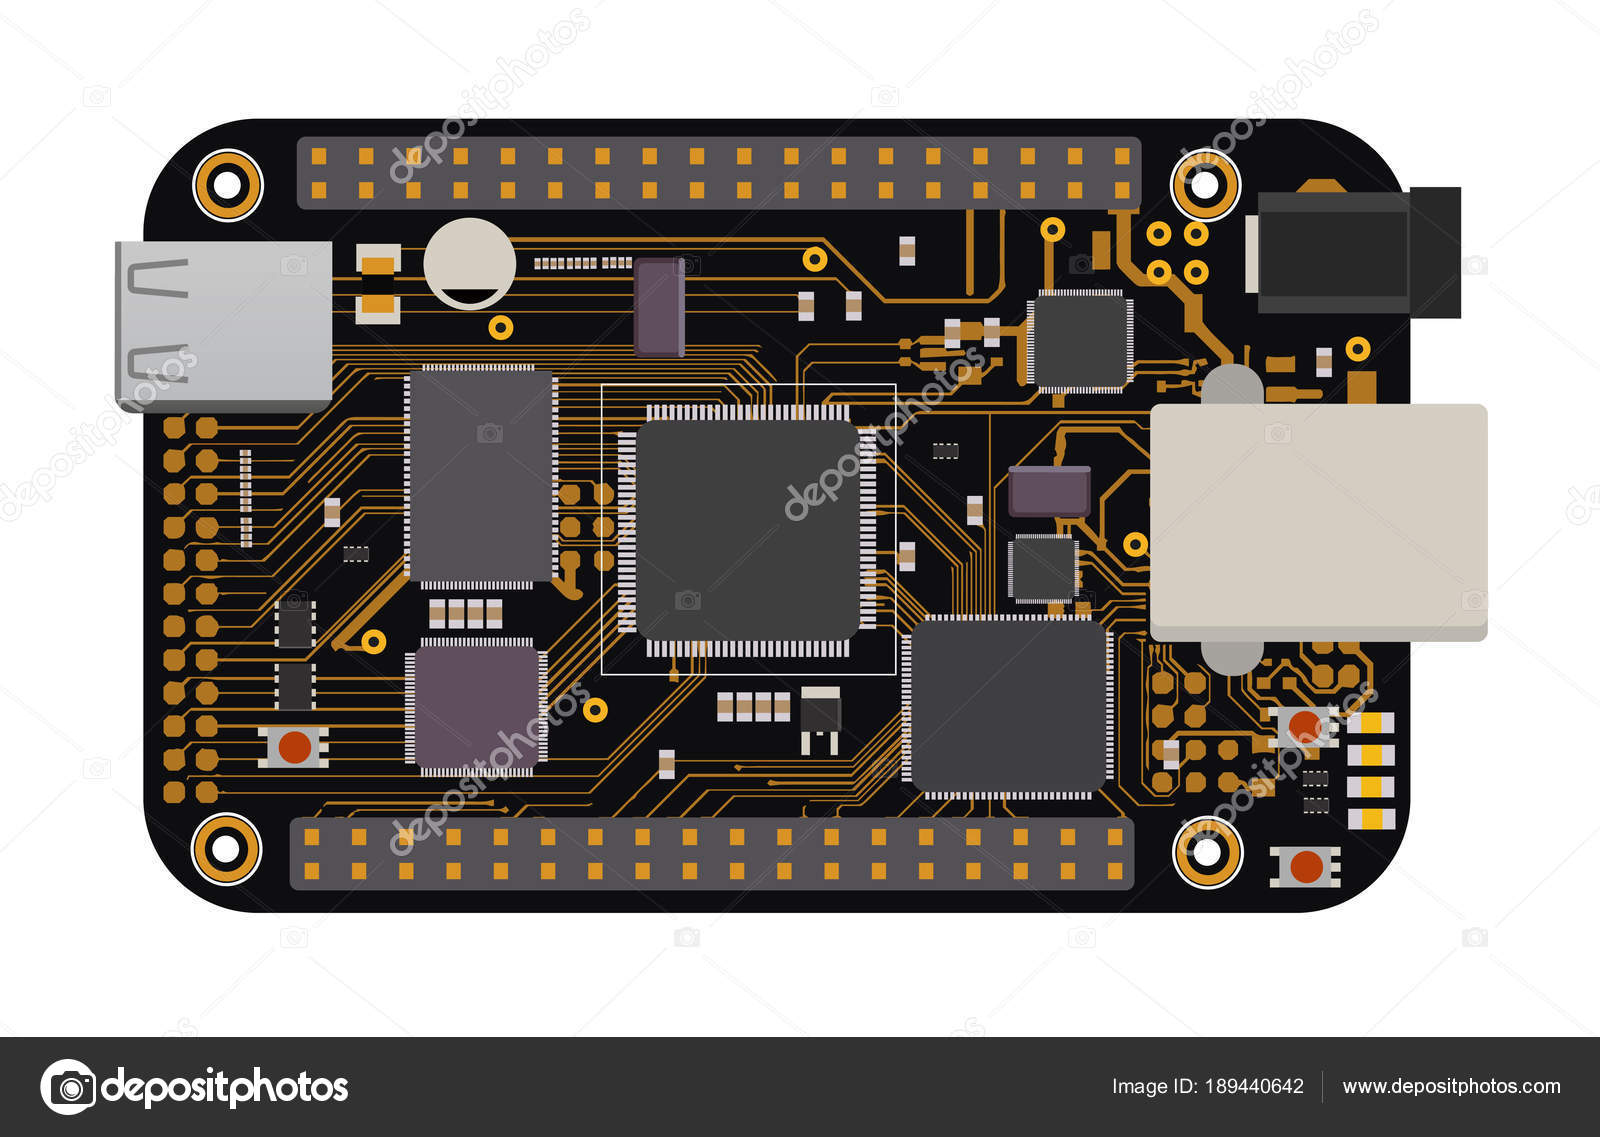 Diy Electronic Mega Board With A Micro Controller Leds Connectors Build Circuit And Other Components To Form The Basic Of Smart Home Robotic